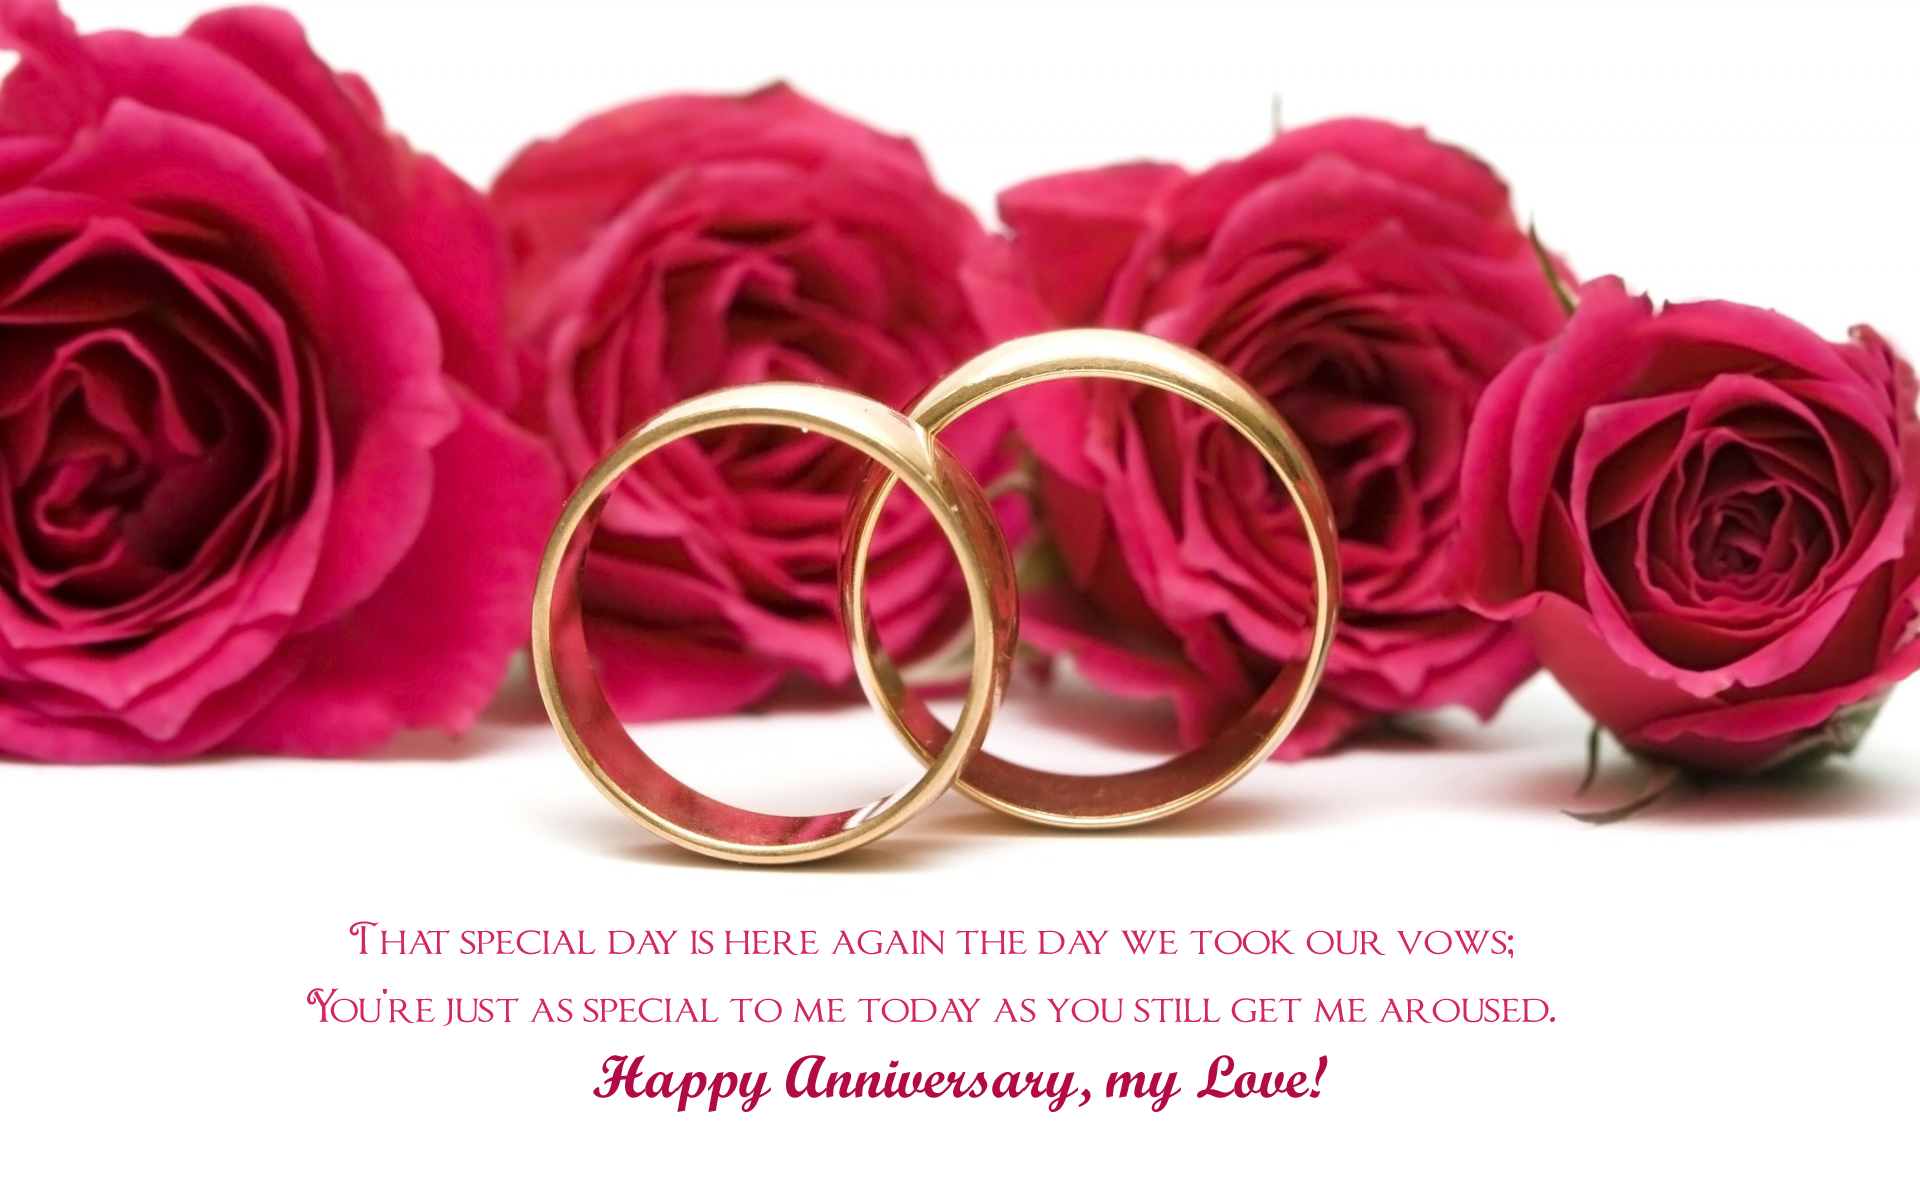 Happy anniversary my love desicomments